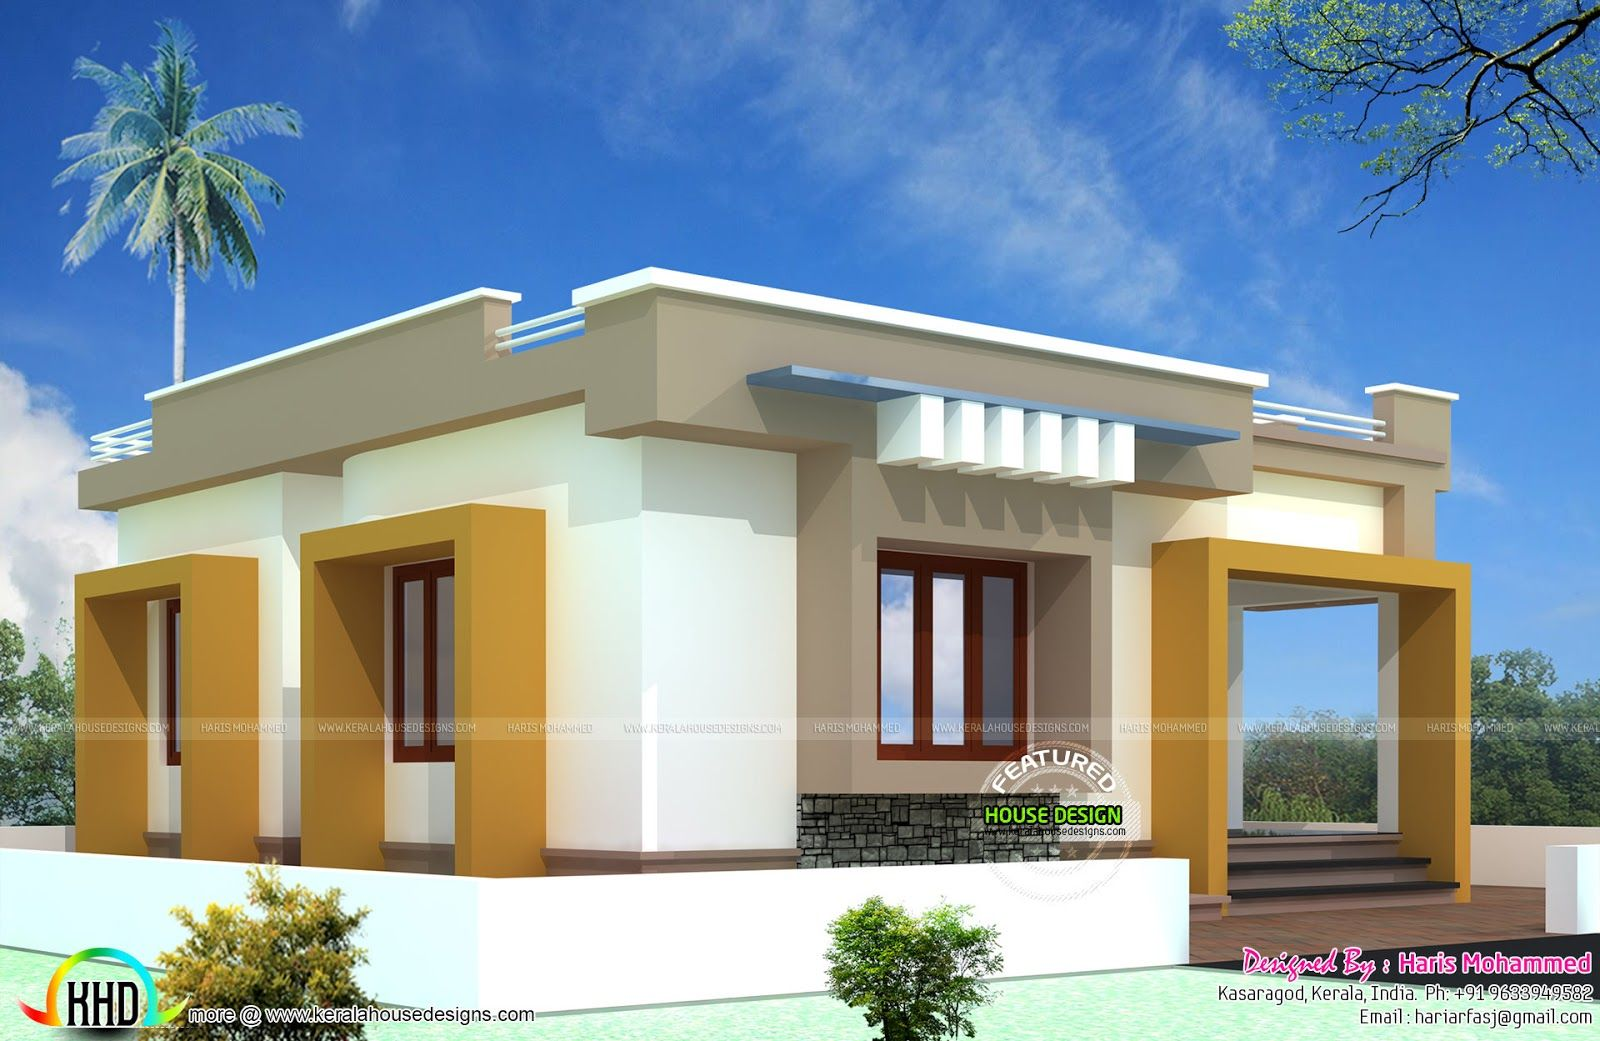 \u20b910 lakhs budget house plan in 2019 house design kanu\u20b910 lakhs budget smallbudget single floor house in an area of 812 square feet by haris mohammed, kasaragod, kerala